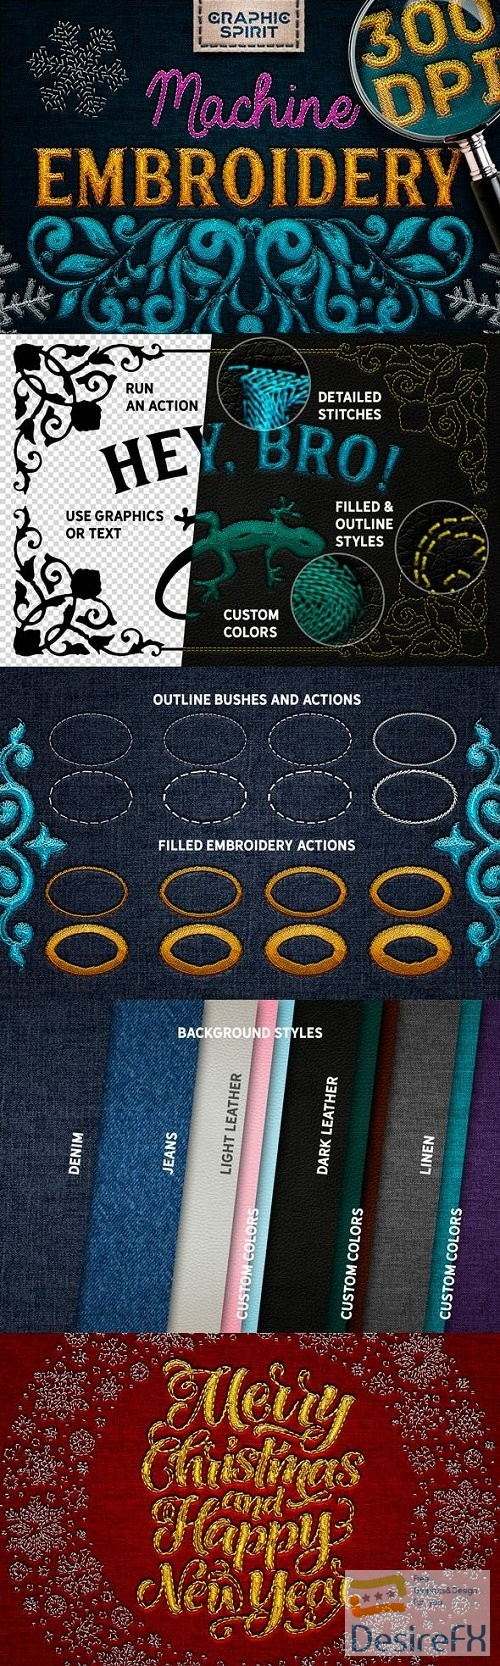 photoshop - Machine Embroidery Actions For Adobe Photoshop - 23583687